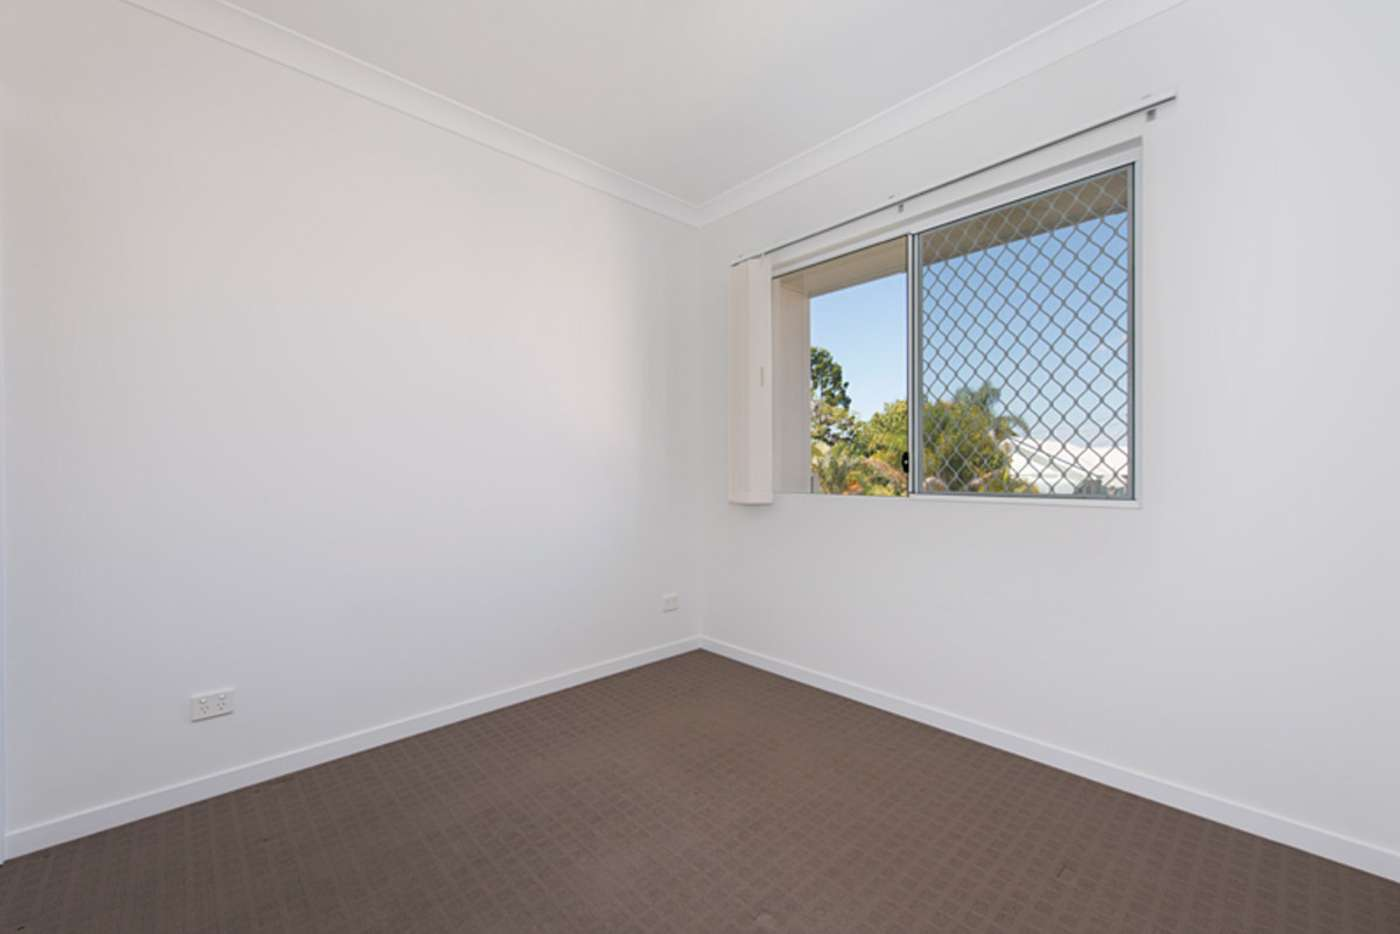 Sixth view of Homely unit listing, 11/22 Birdwood Street, Zillmere QLD 4034